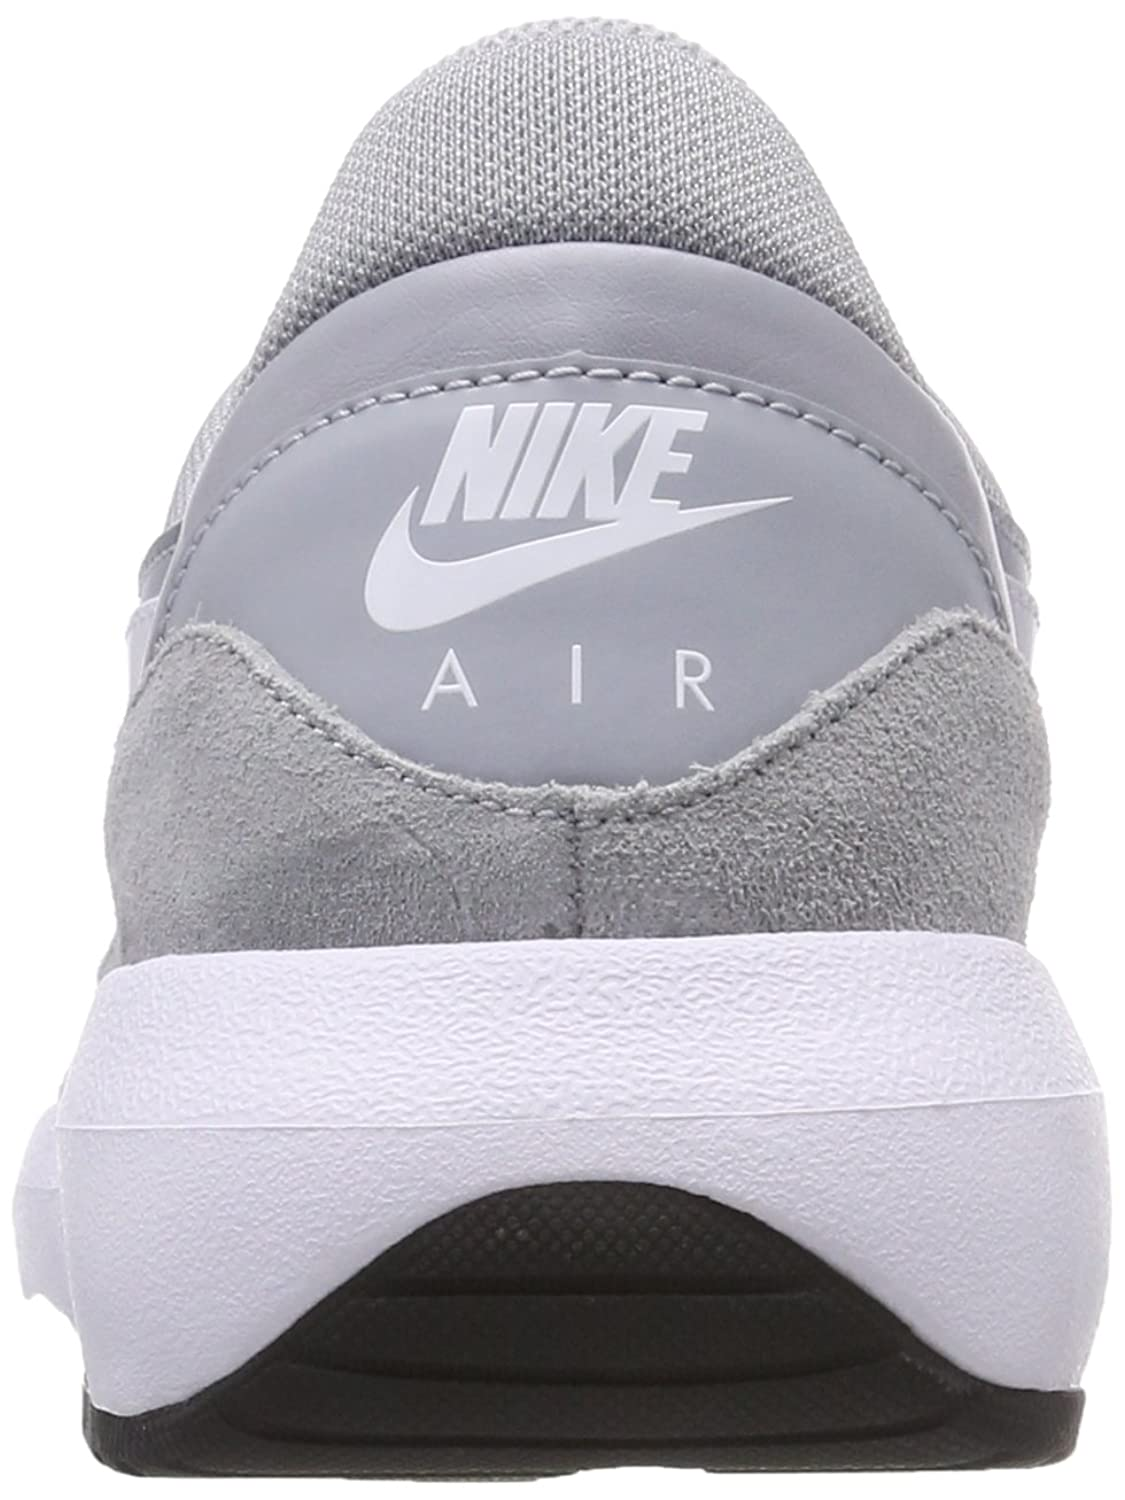 Mens Air Max Nostalgic Gymnastics Shoes, Grey (Gunsmokeobsidiannavyvintage 003), 6 UK (40 EU) Nike